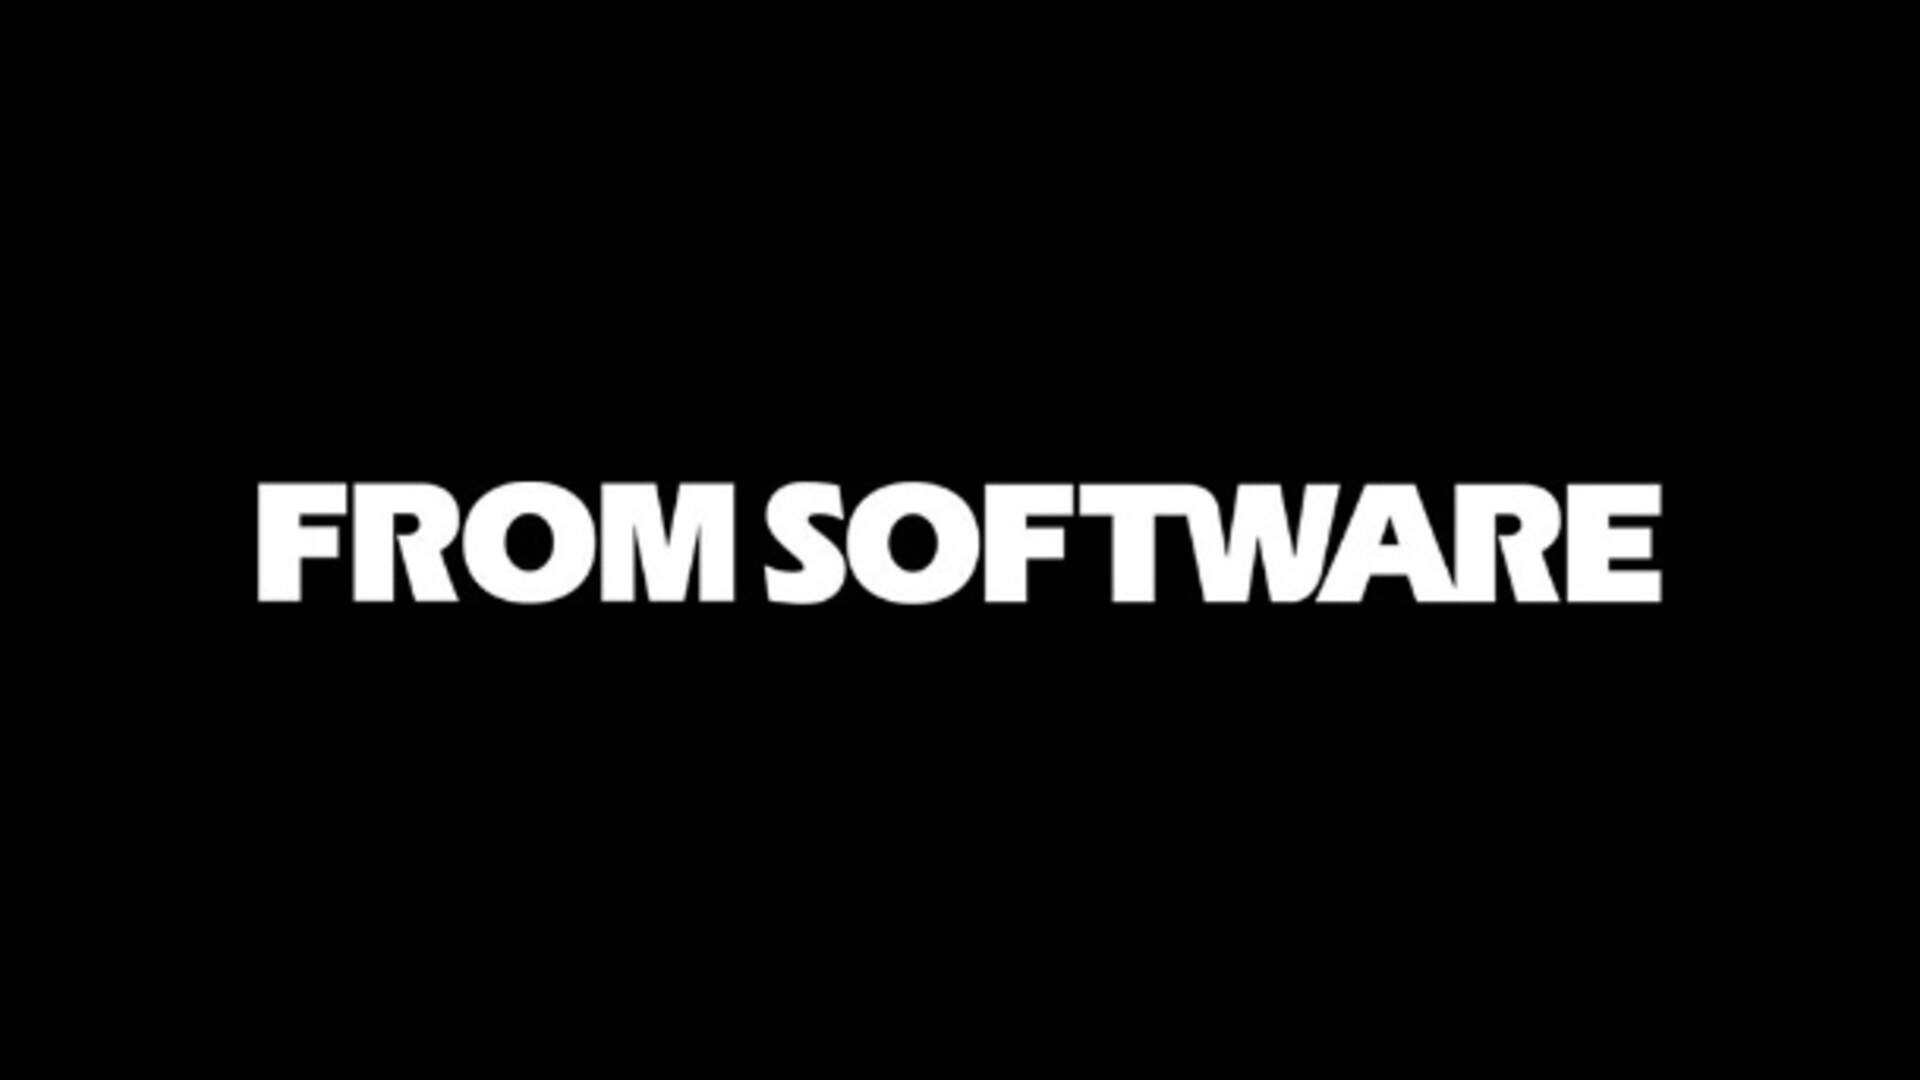 Did From Software Just Tease Bloodborne 2?